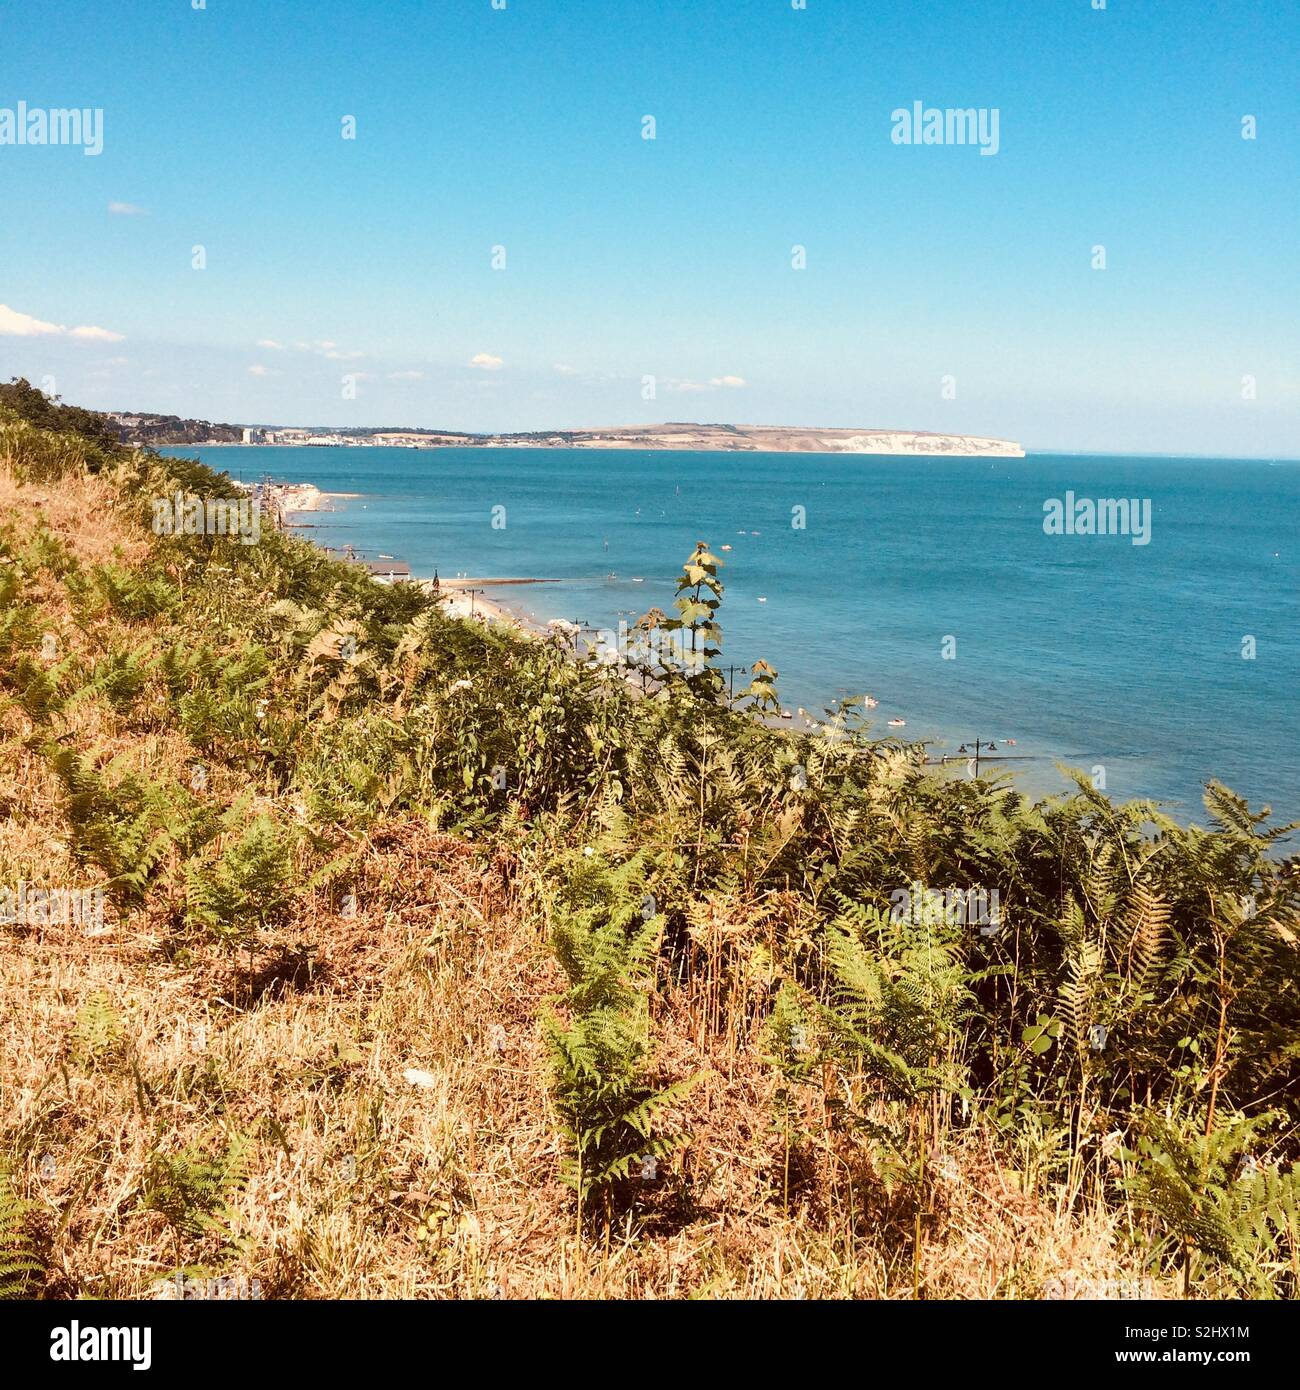 View from Shanklin, Isle of Wight, UK. Stock Photo